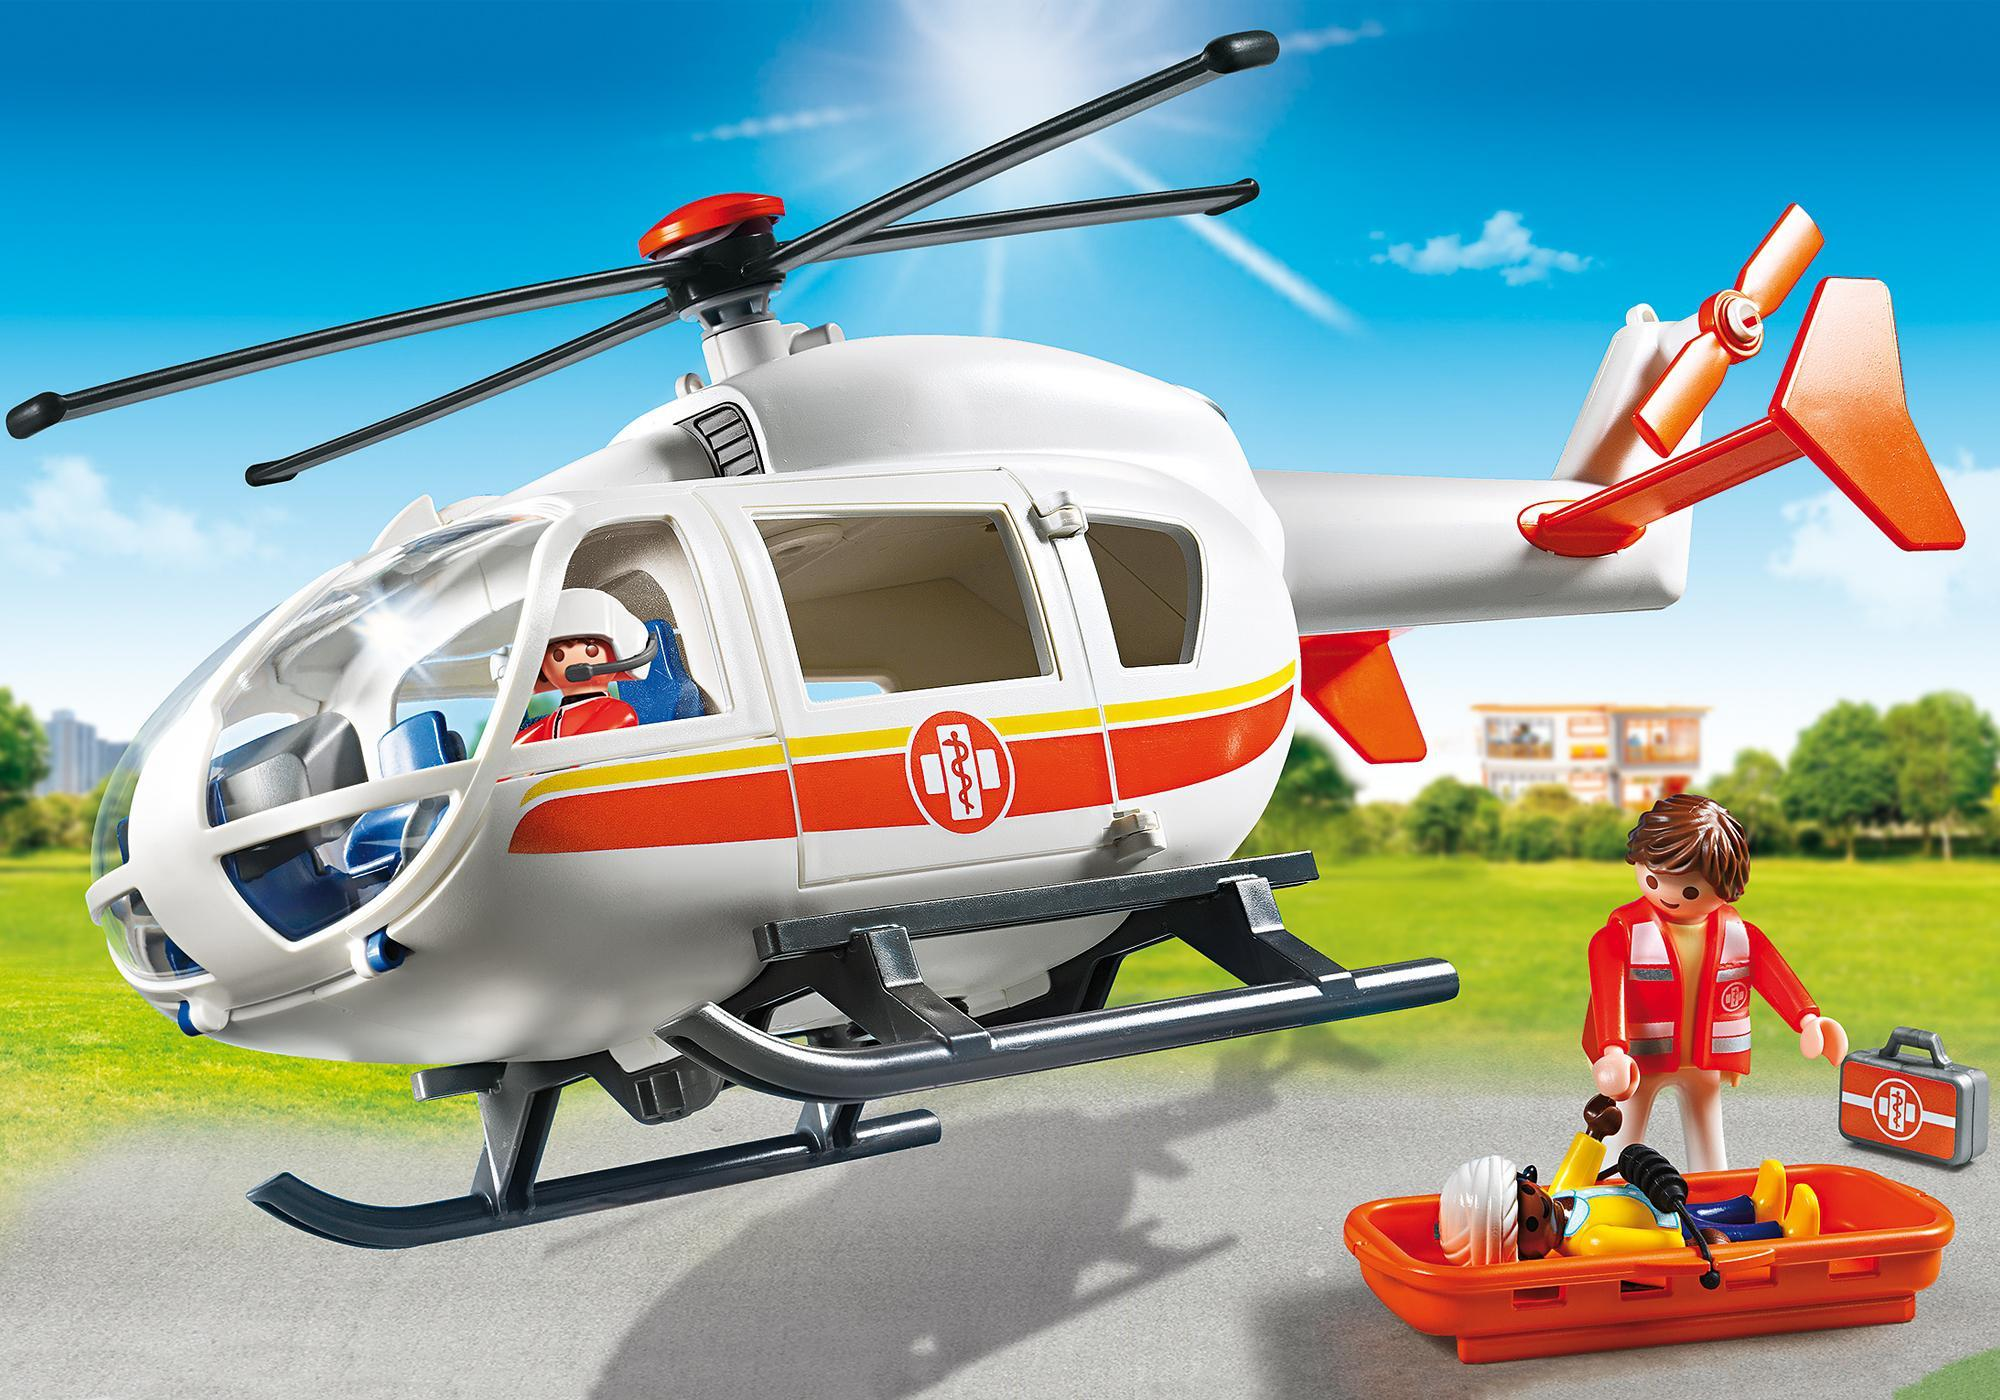 http://media.playmobil.com/i/playmobil/6686_product_detail